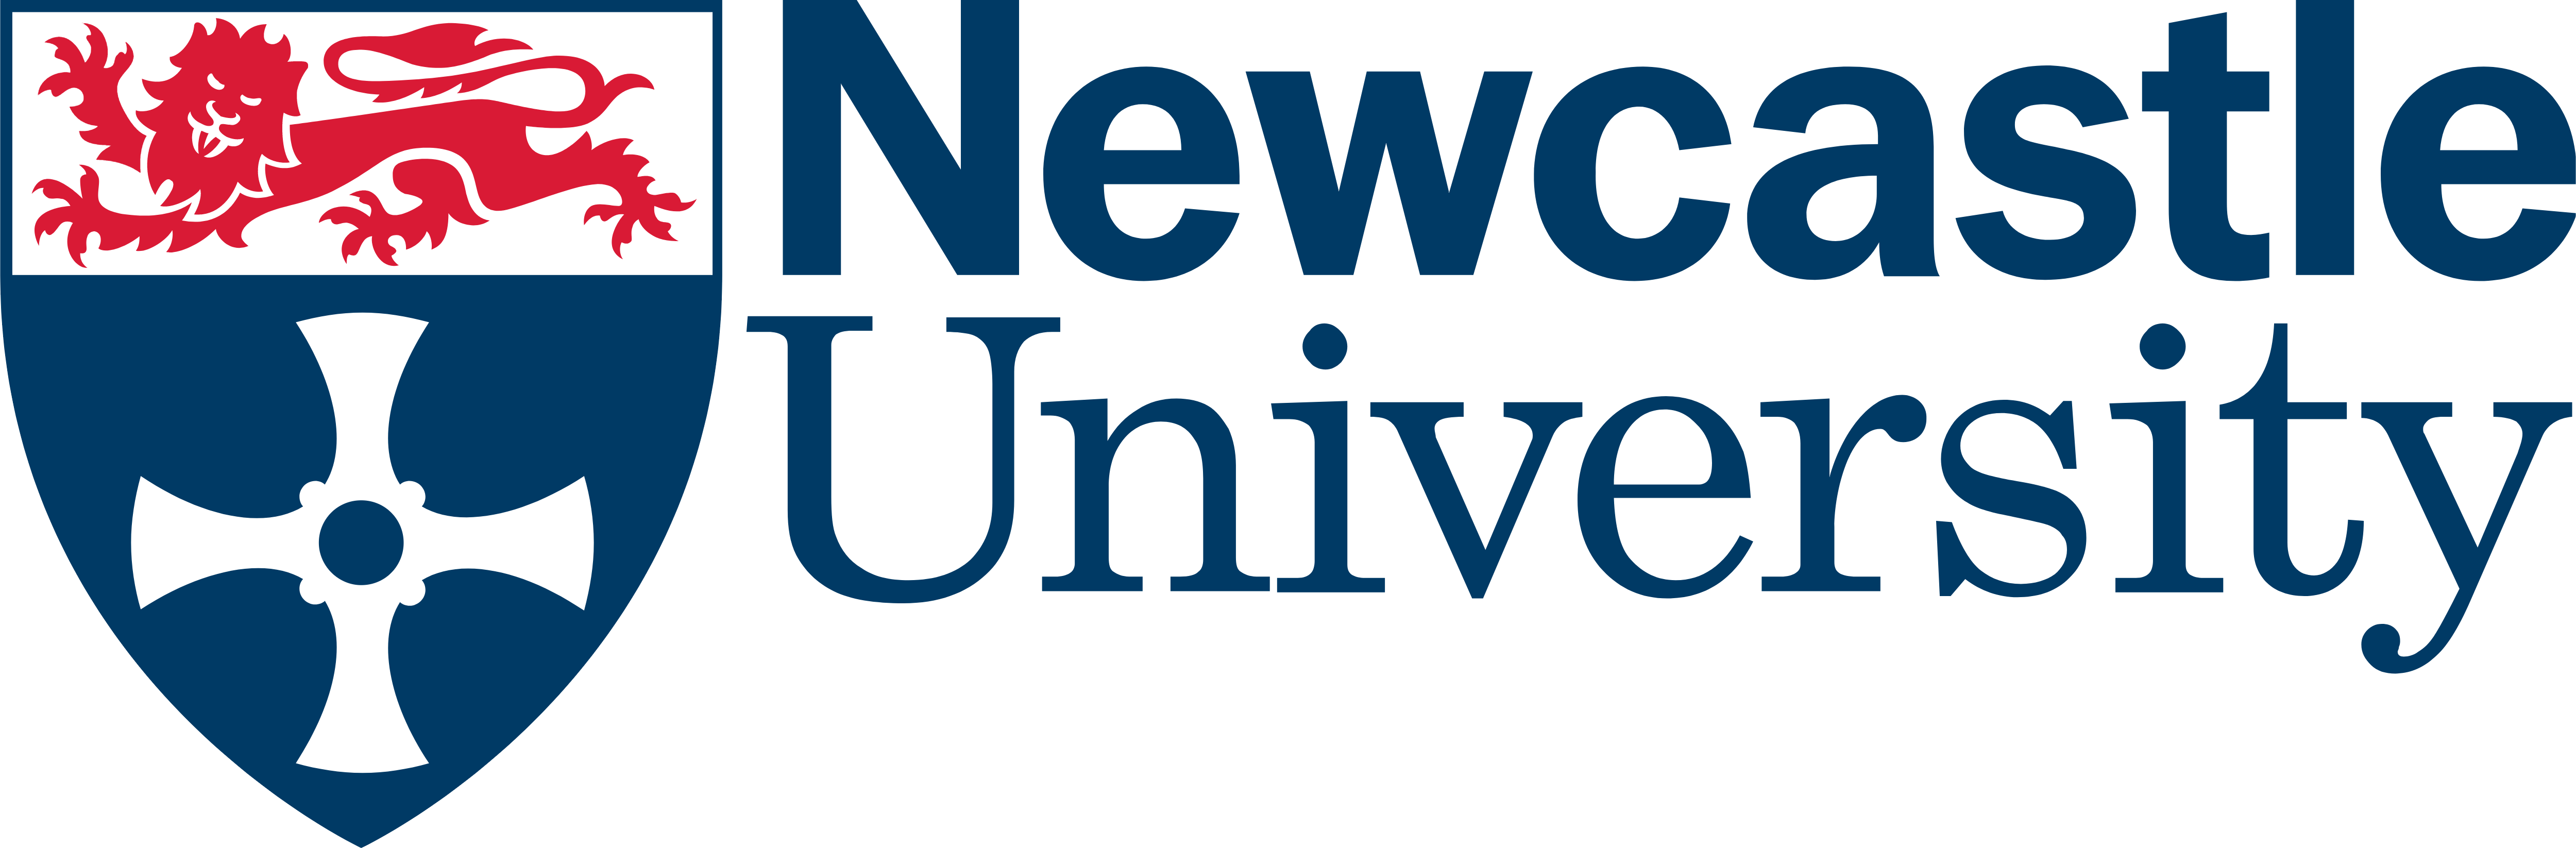 partners Newcastle University